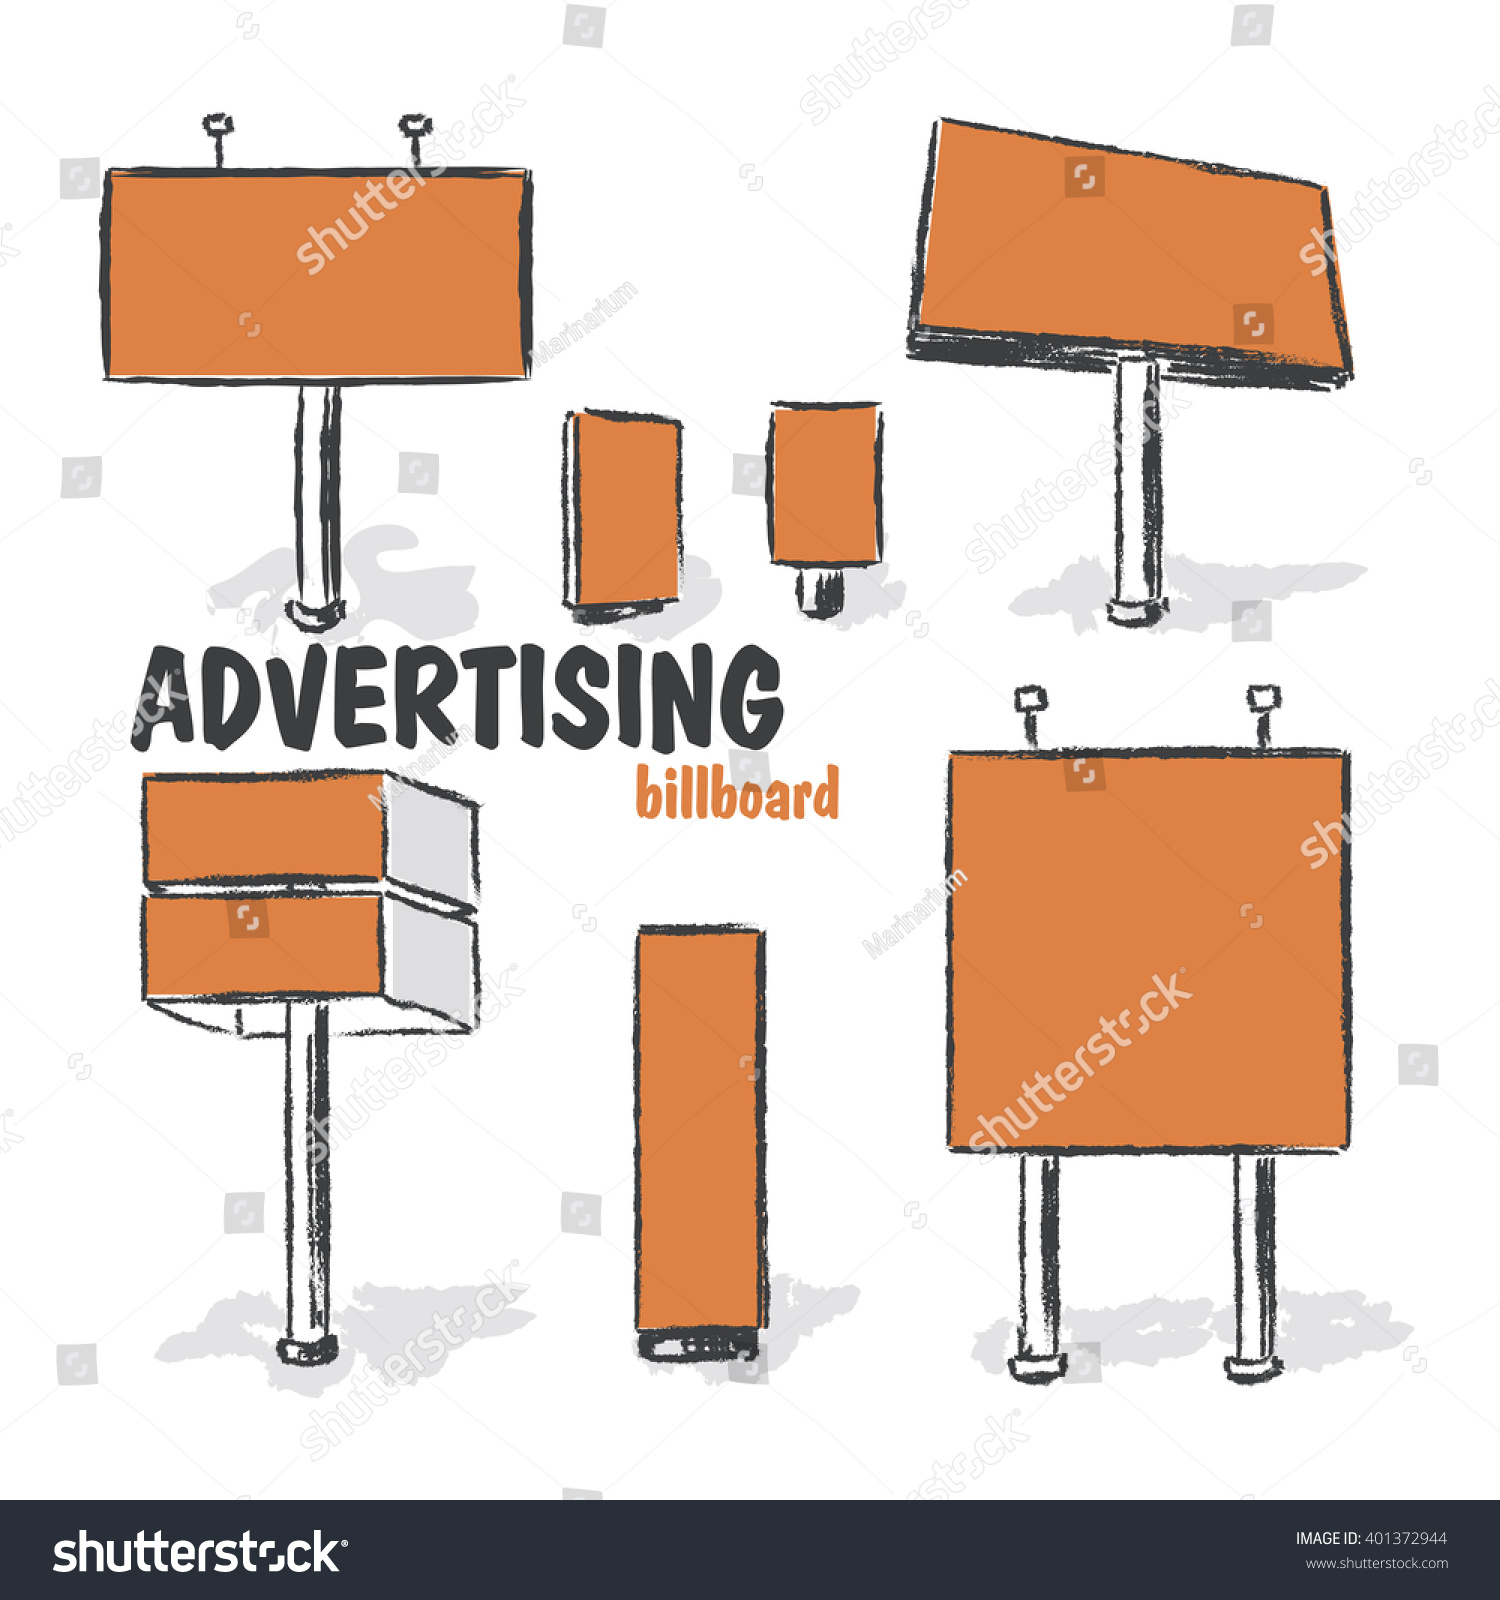 billboards outdoor advertisement templates stock vector royalty